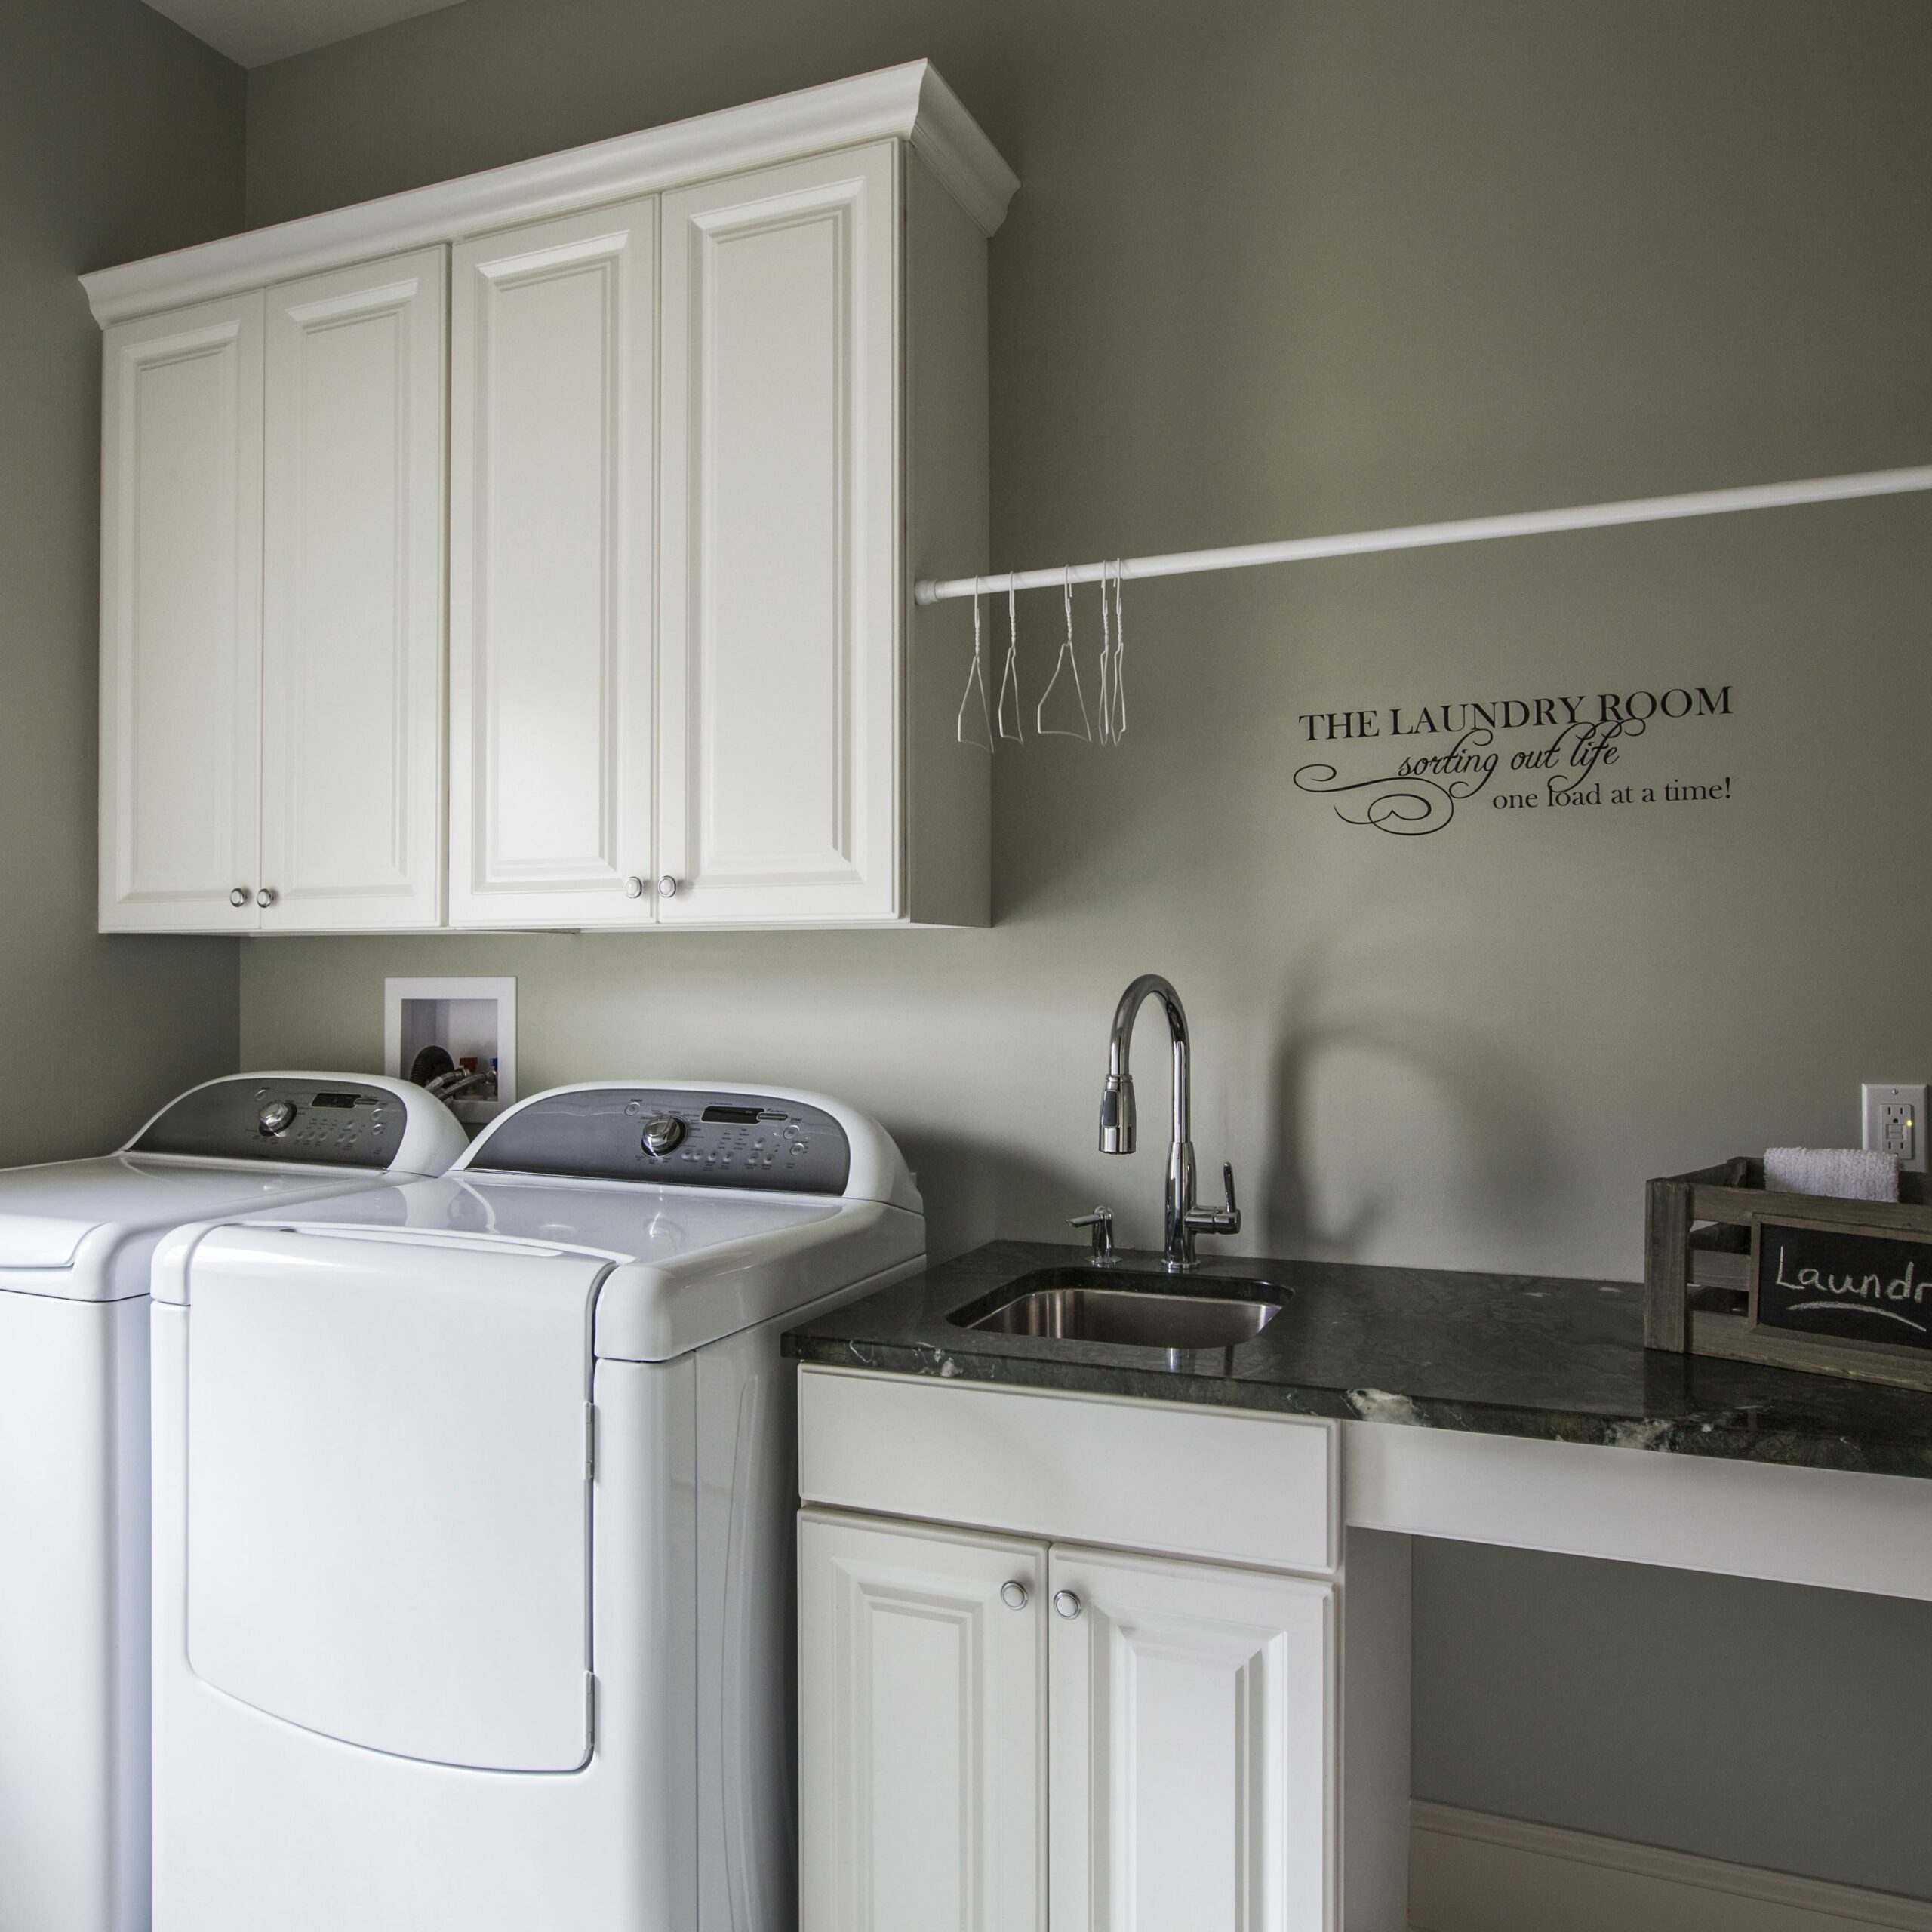 How Does a Top Load Washer Work? - laundry room ideas with top load washer